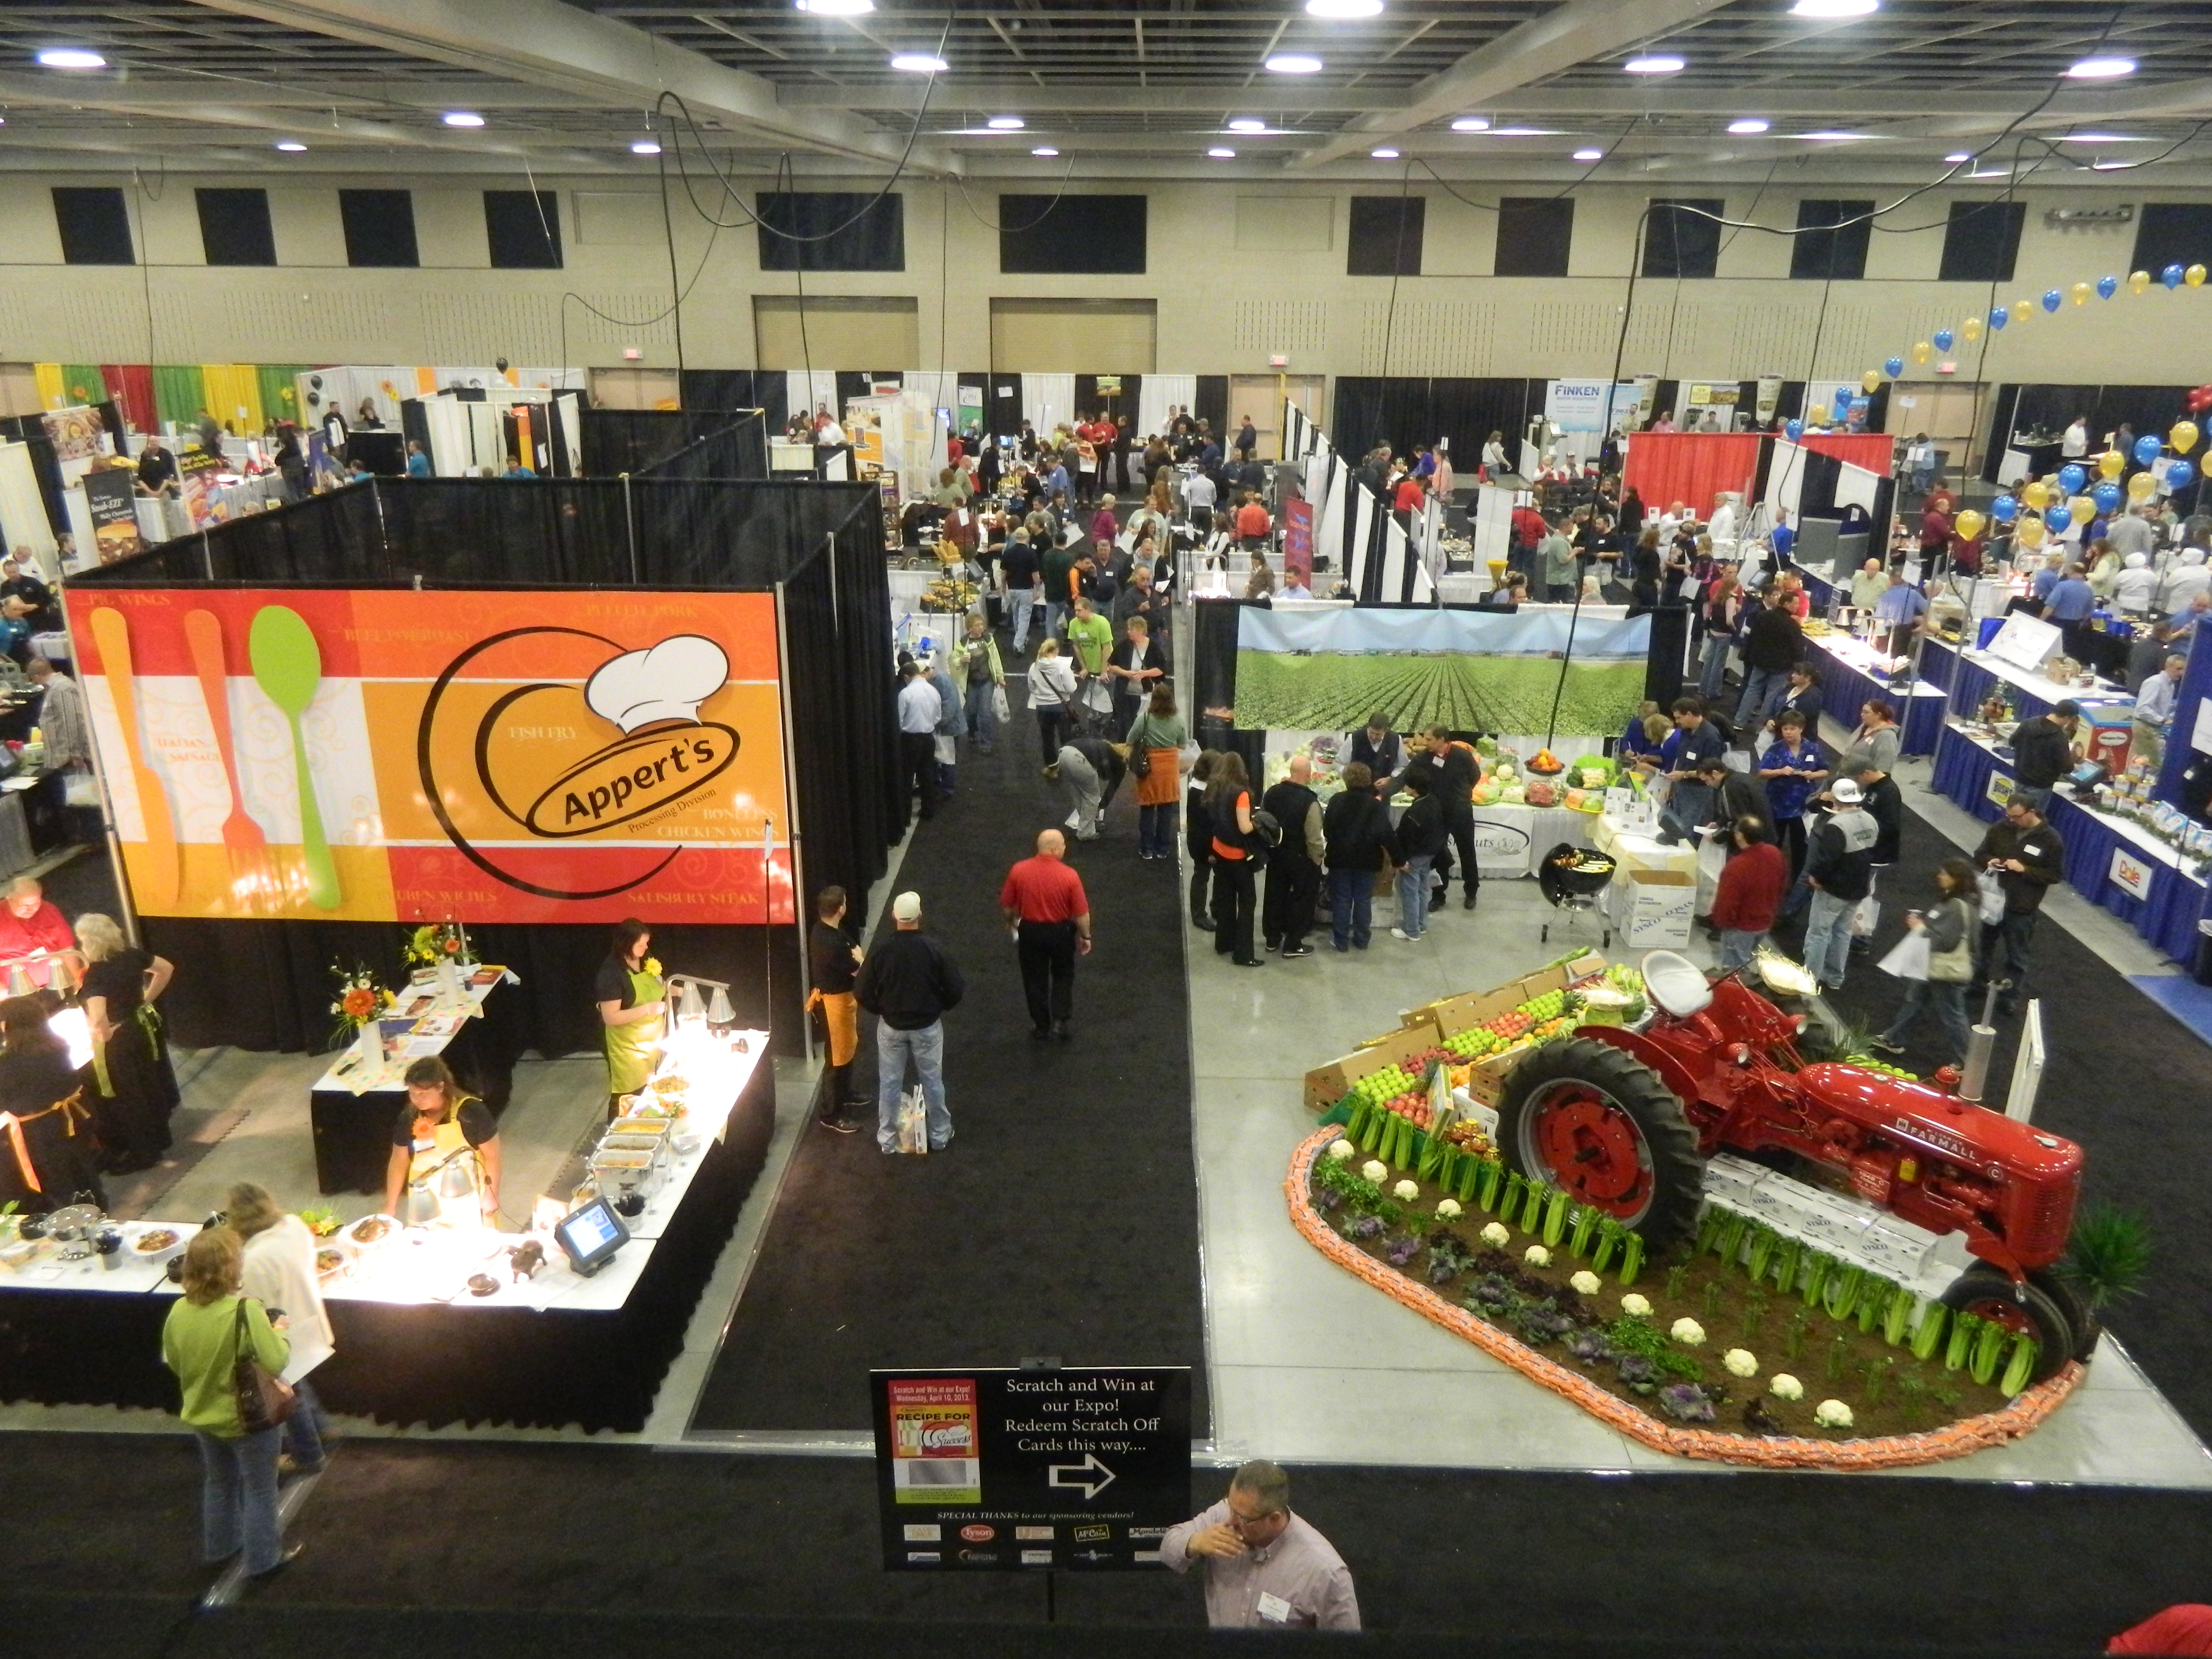 Aerial view of people and a variety of exhibits in convention hall for Appert's Food Service Food Show